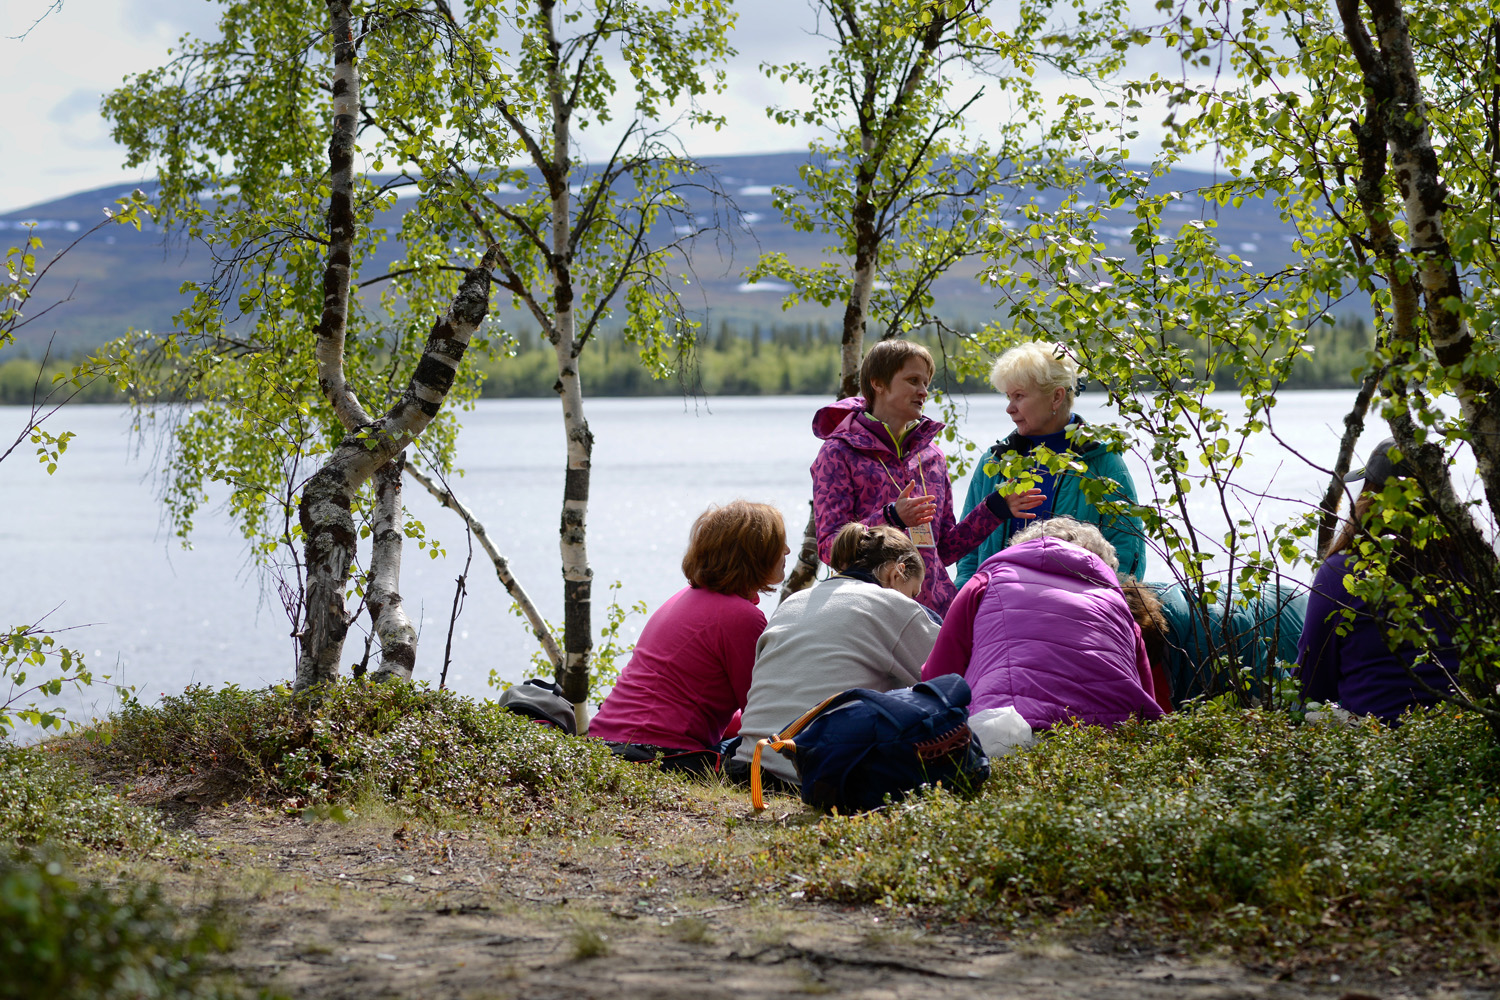 In mid-June in the village of Lovozero in the Murmansk Region, right in the heart of Saami culture, a picturesque lakeside location hosts an event of traditional Saami games.